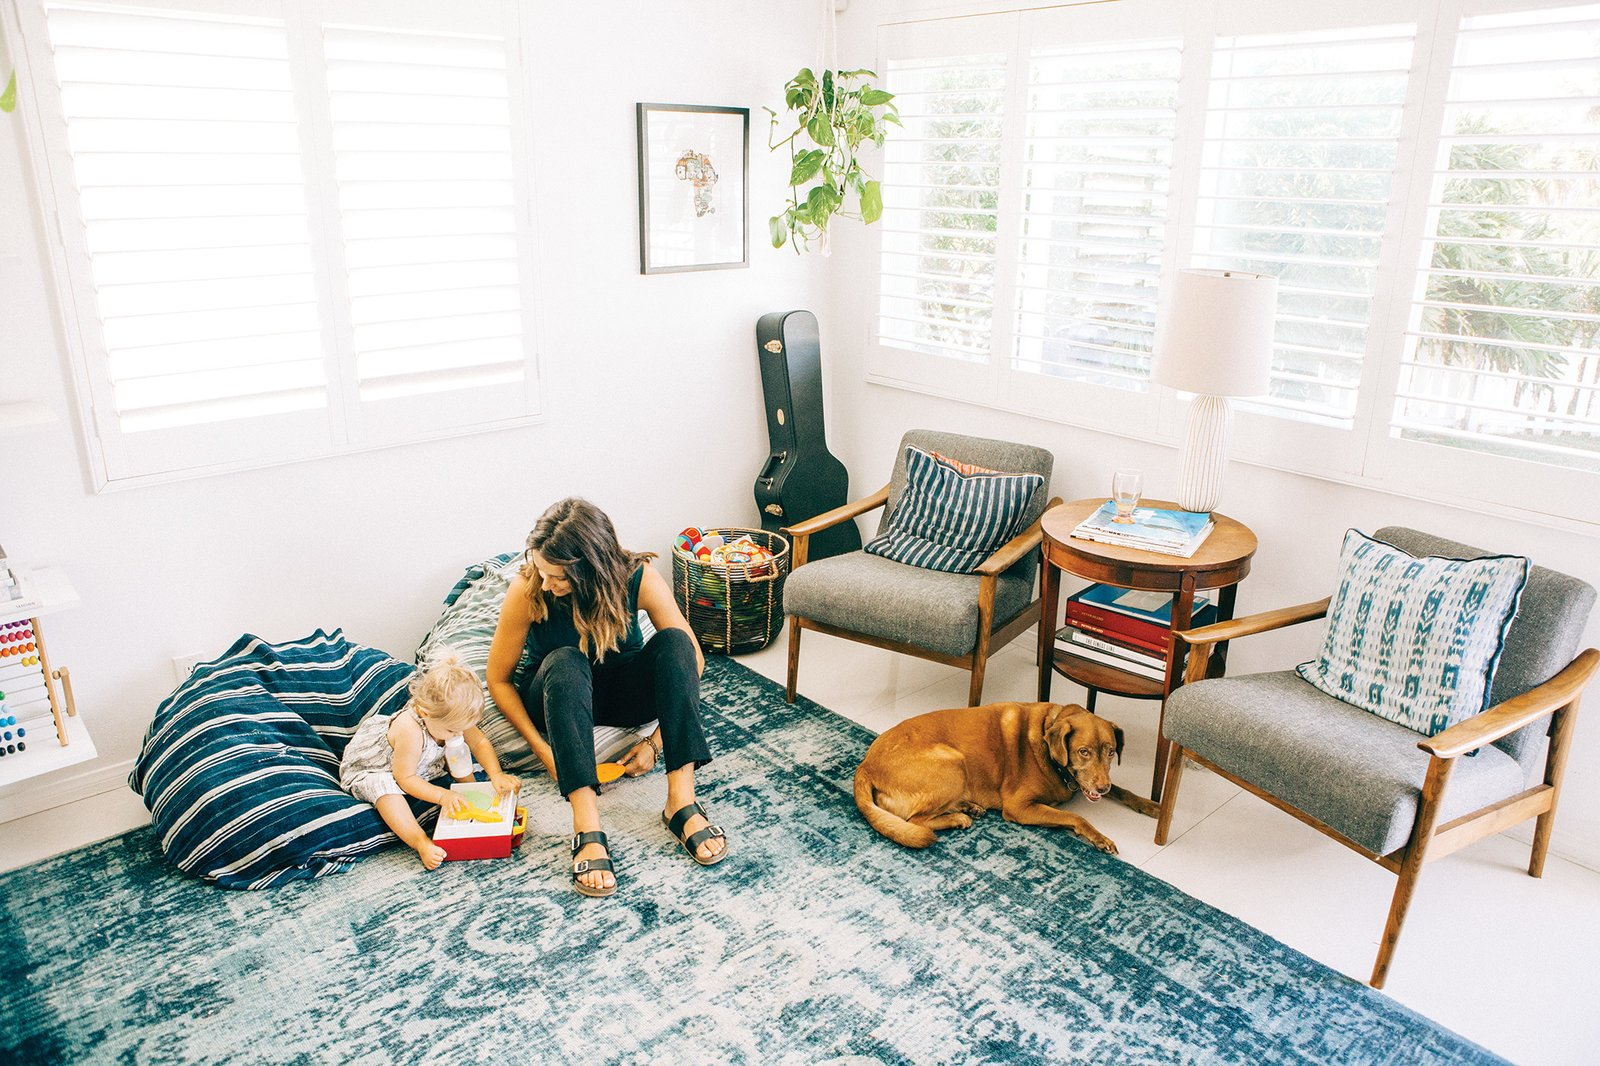 Grant Ellis's wife Julie and daughter Kaia are shown here in their cozy, indigo-filled living room in Cardiff, California.  Photo 11 of 11 in Indoek's New Book Shares a Glimpse Into the Homes of Creative Surfers